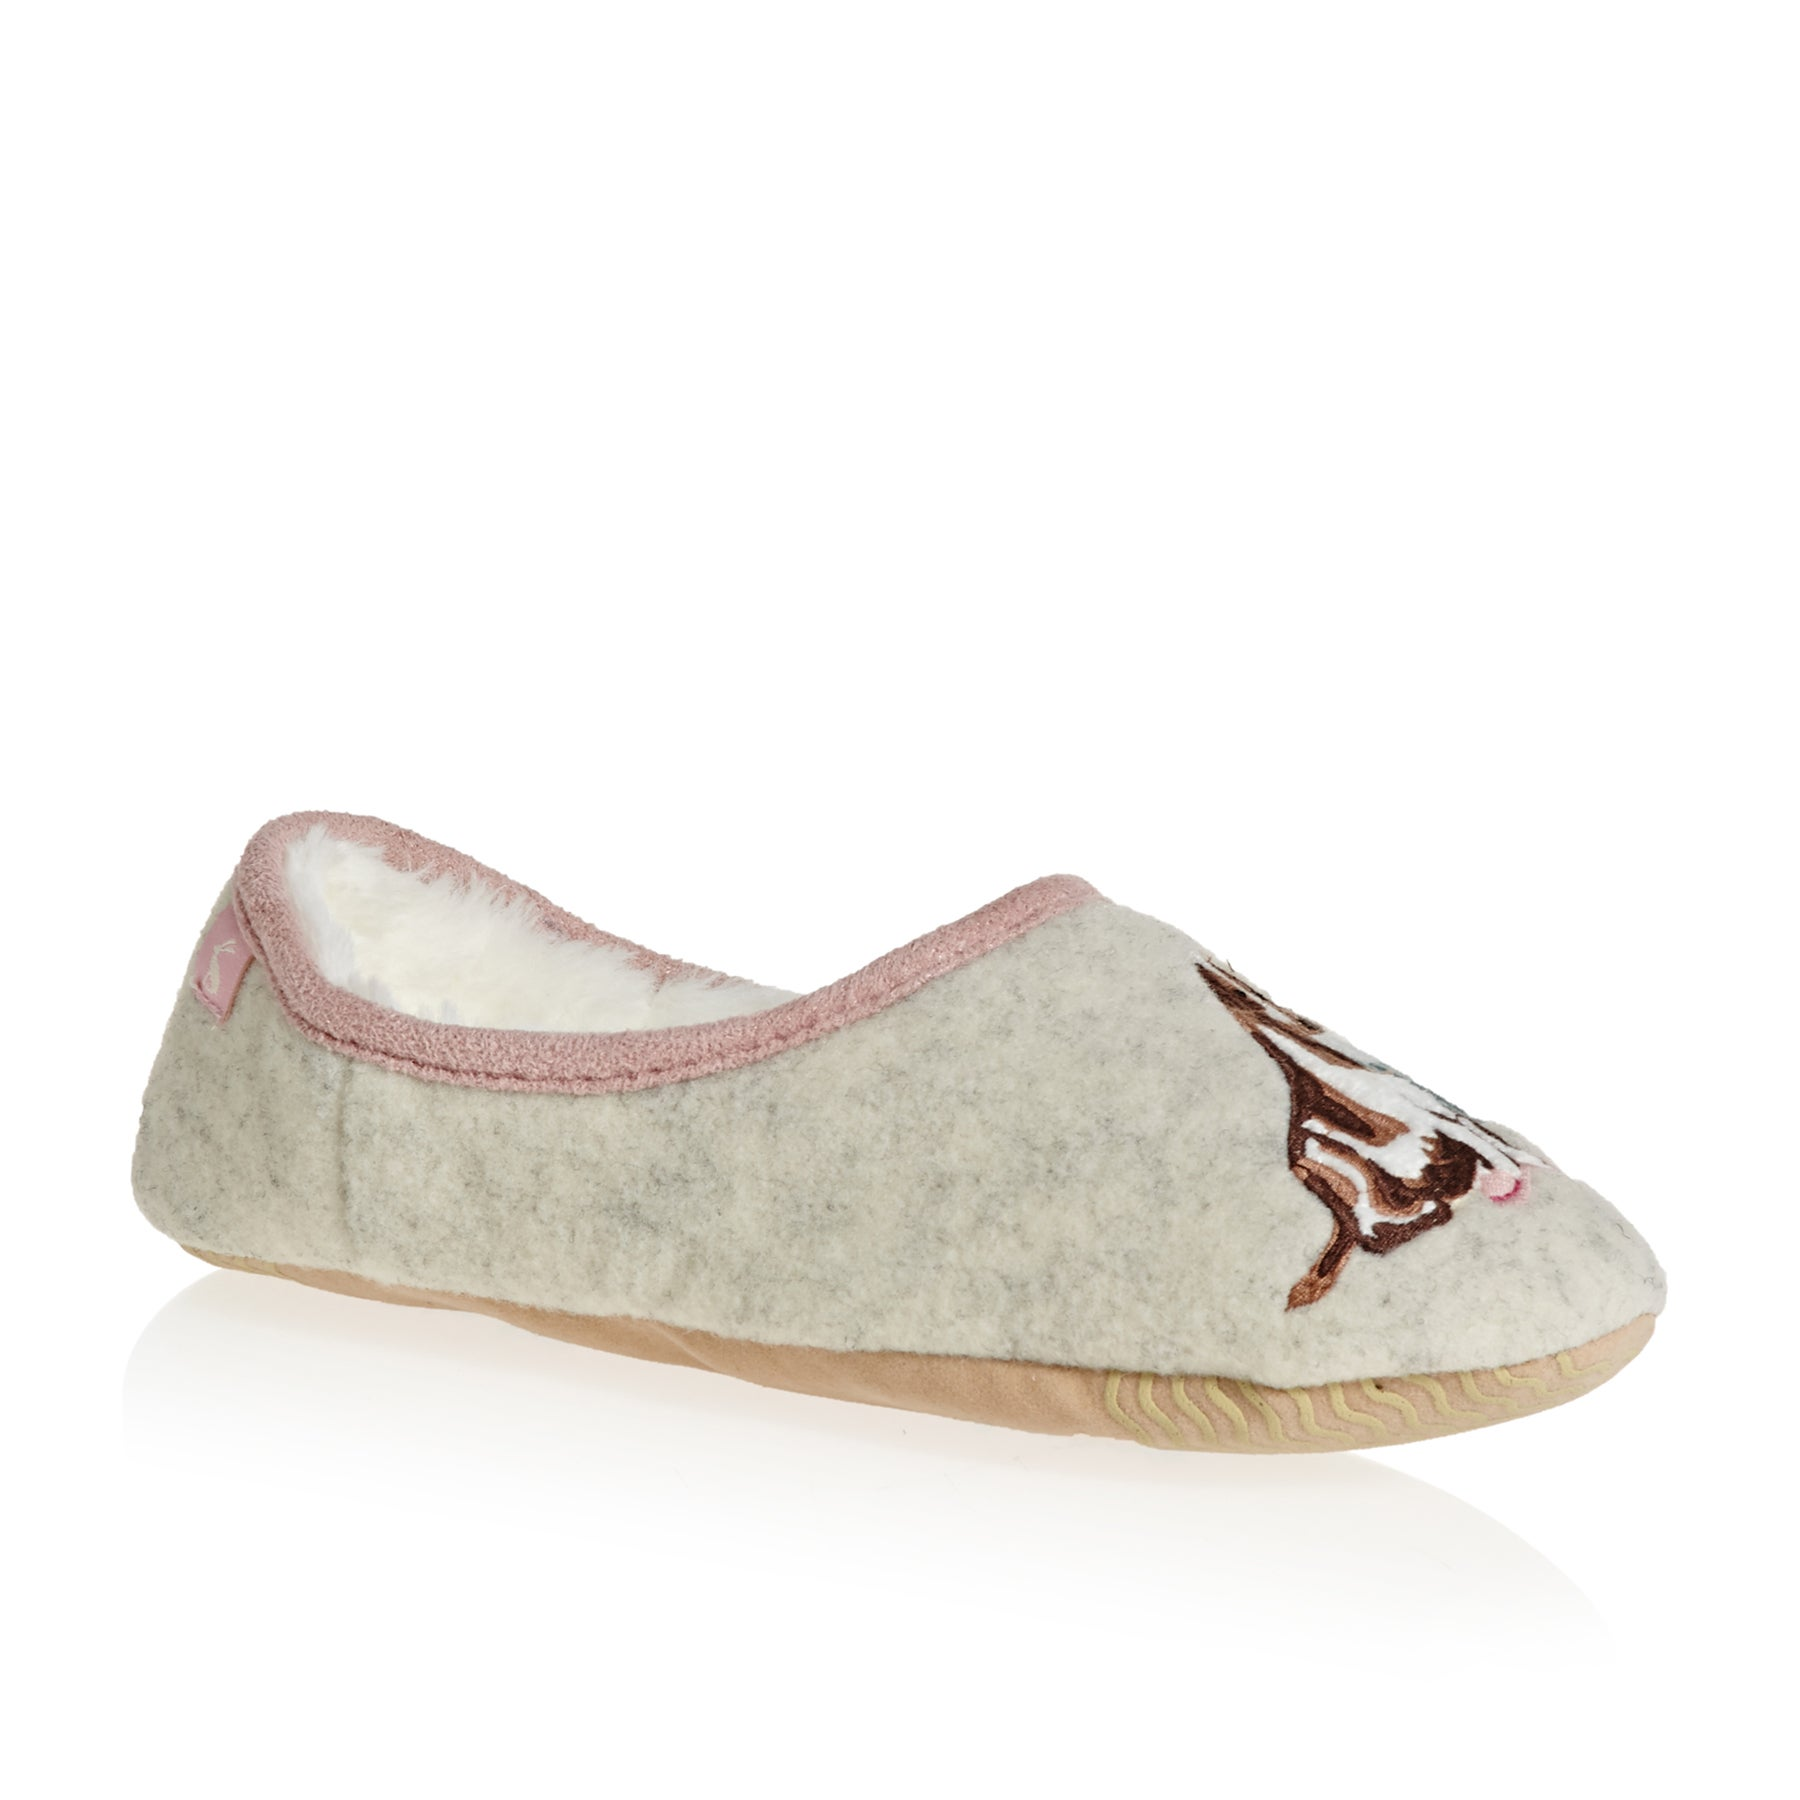 Joules Slippets Mules With Applique Womens Slippers - Cream Dogs